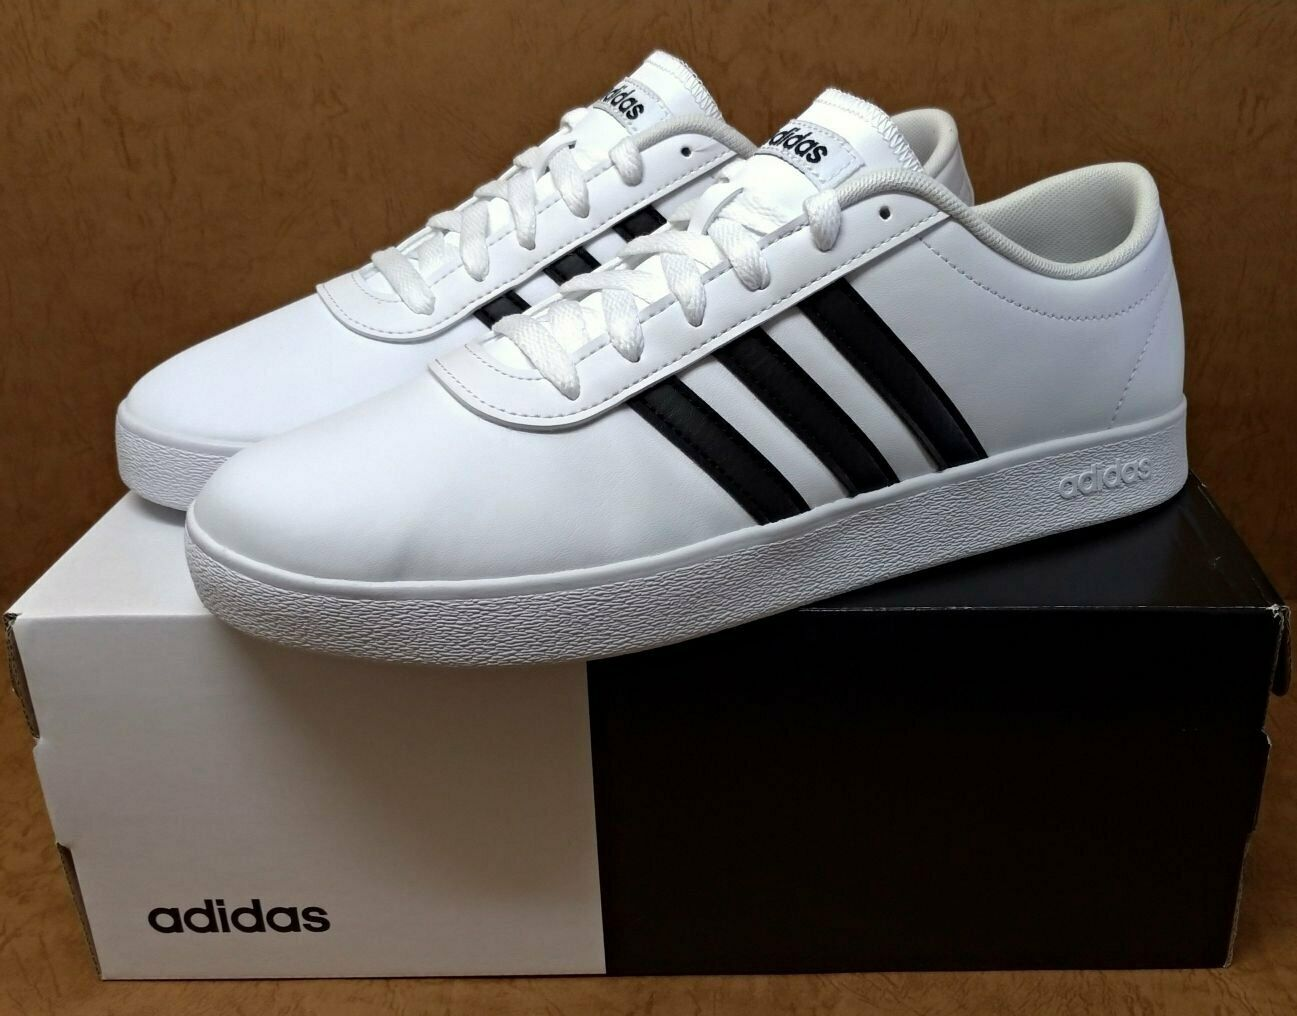 Adidas Chaussures Hommes Baskets Essentials Mode Facile Vulc